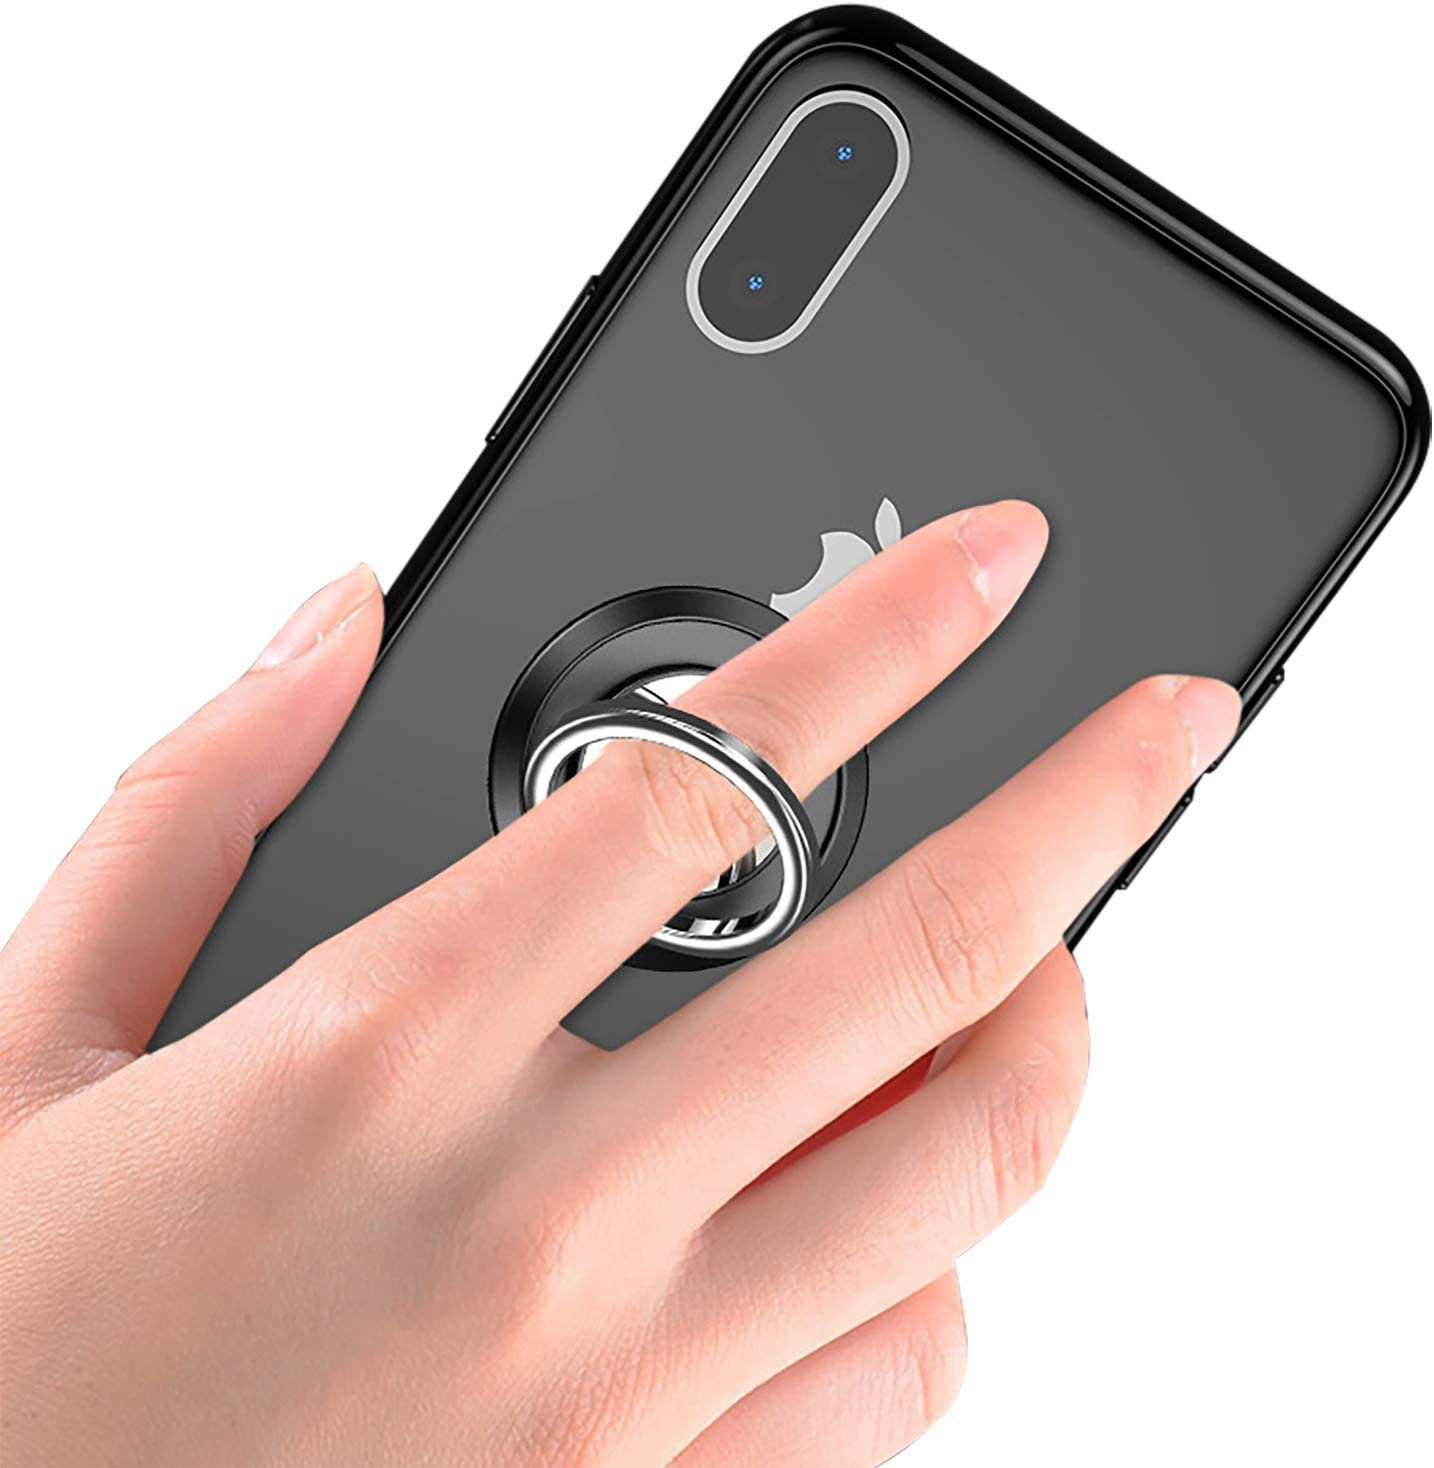 Pink, One Size Phone Ring Holder Finger Kickstand NICEKEY 360/° Rotation Metal Ring Grip for Magnetic Car Mount Compatible for iPhone iPad Samsung Galaxy All Smartphone